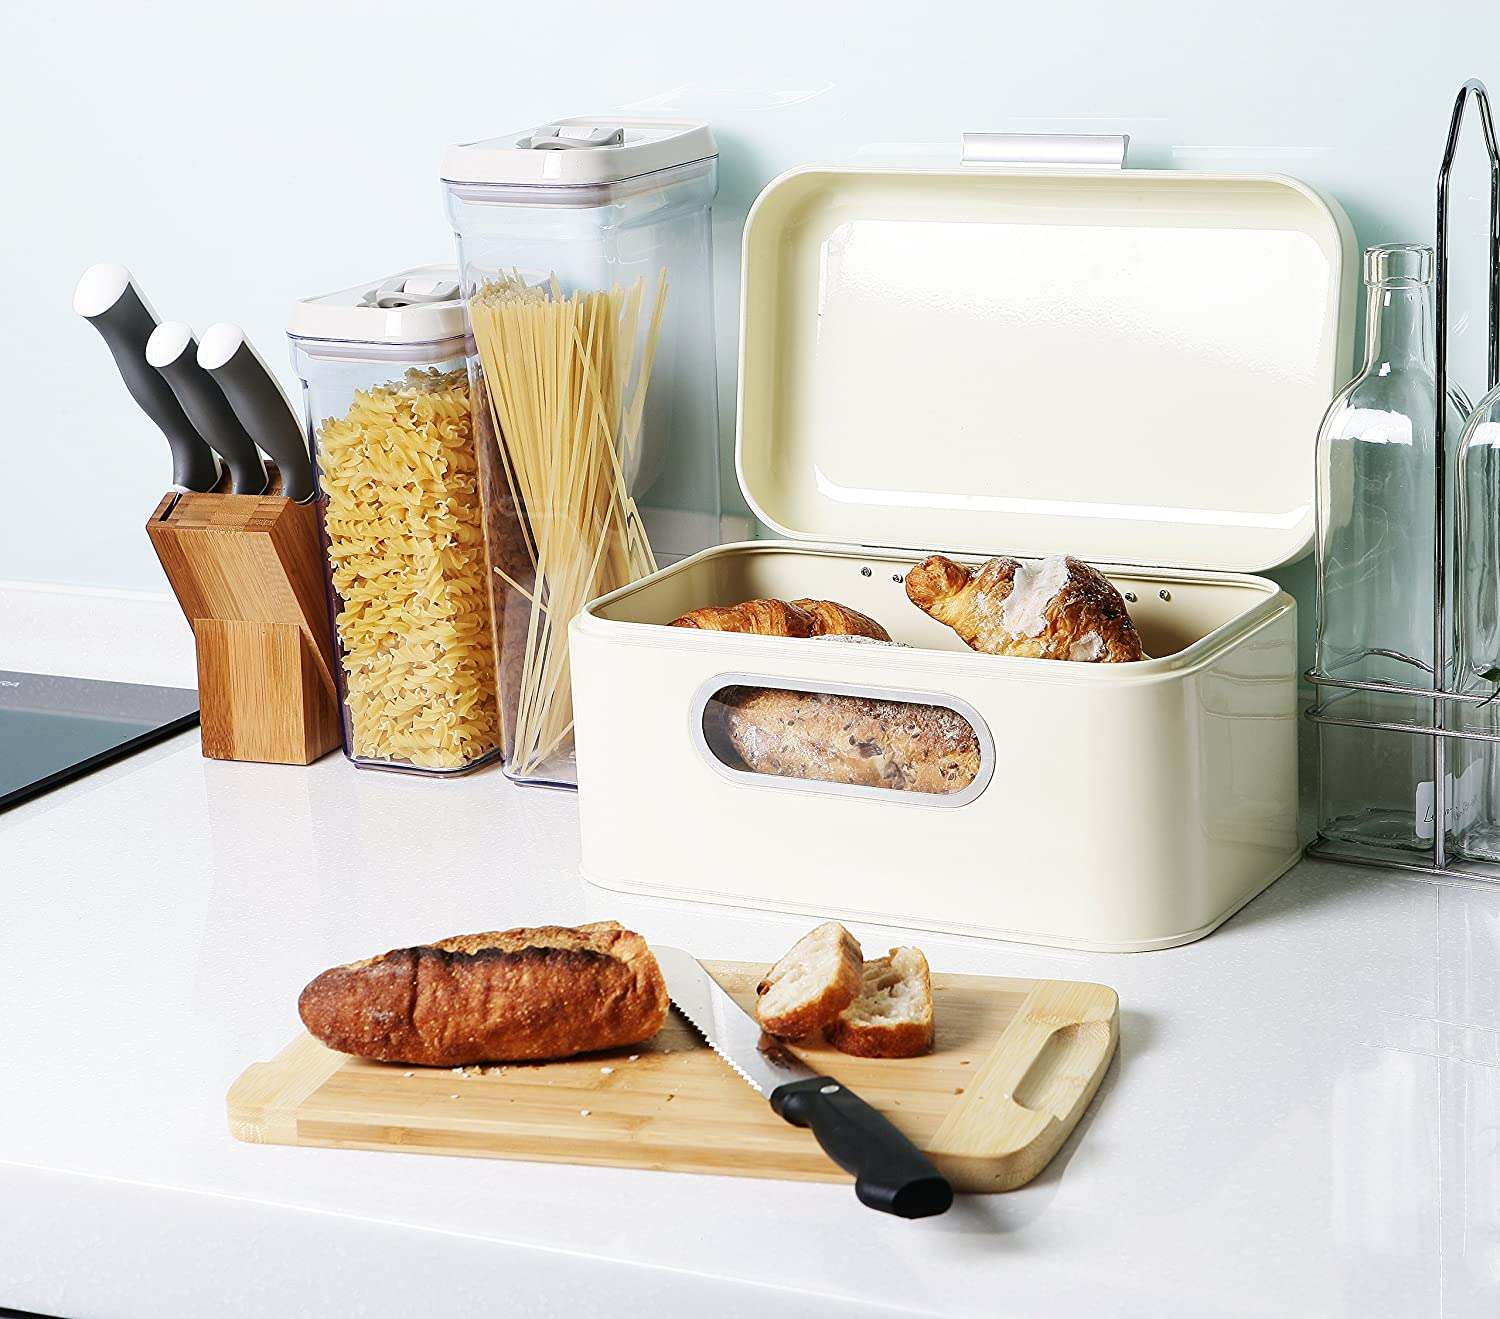 Pastries Bread Bin Storage Container with Lid for Loaves Ivory and More 12 x 7.25 x 6.25 Inches Bread Box for Kitchen Countertop